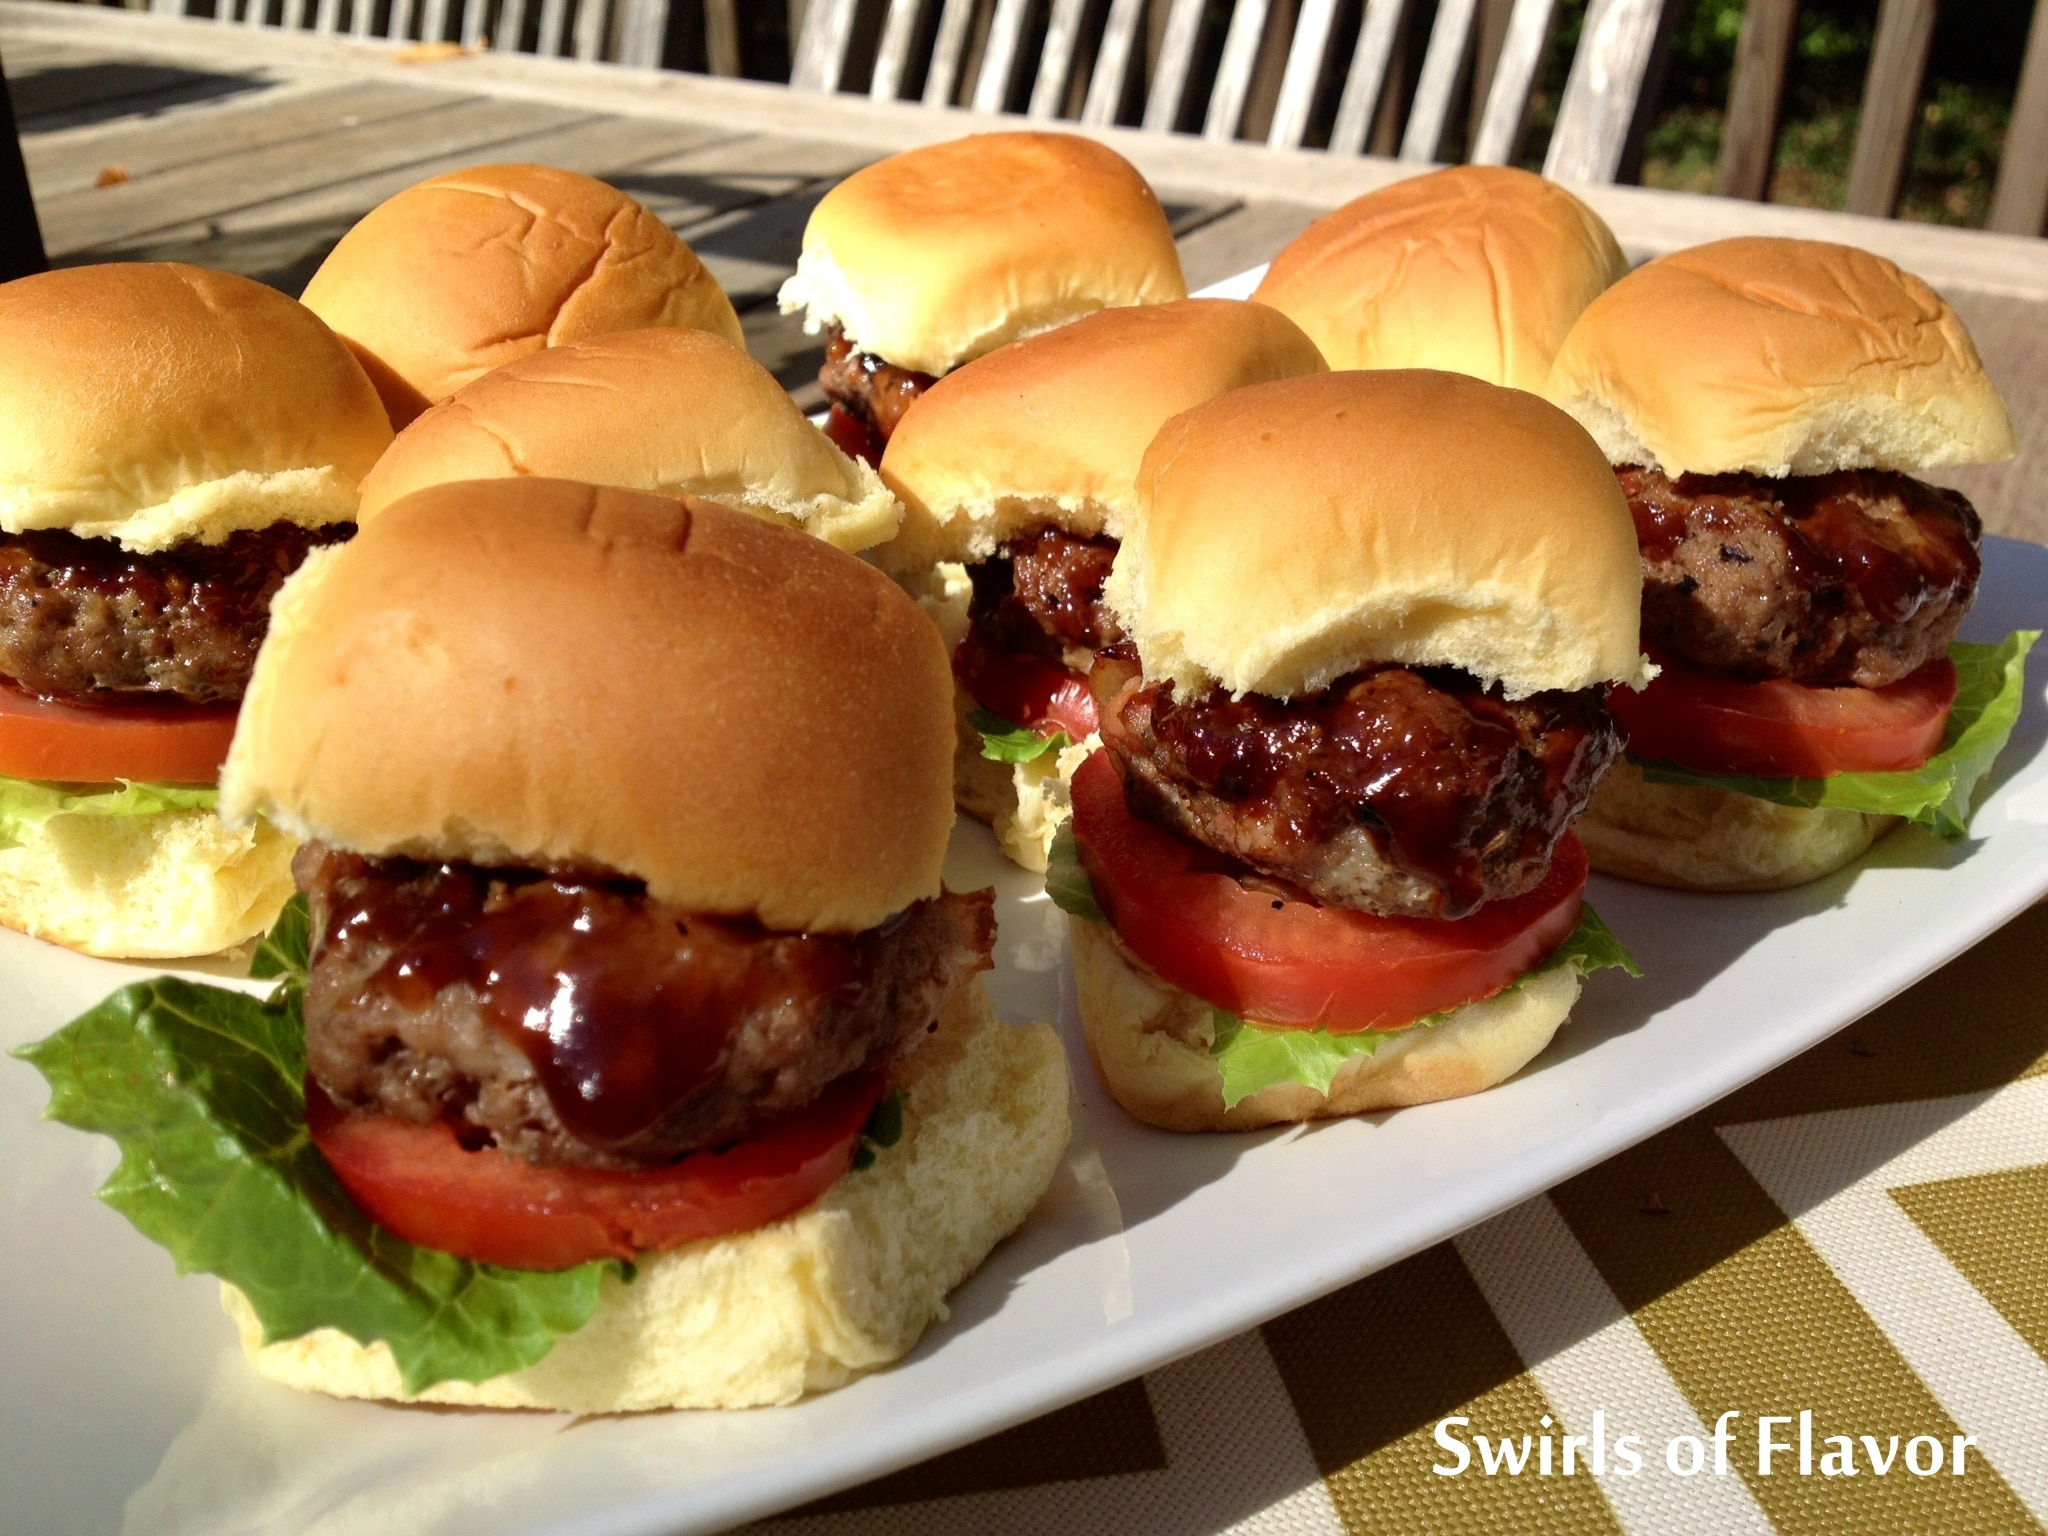 Mini burgers with a barbecue glaze, tomatoes and lettuce on mini rolls on a platter